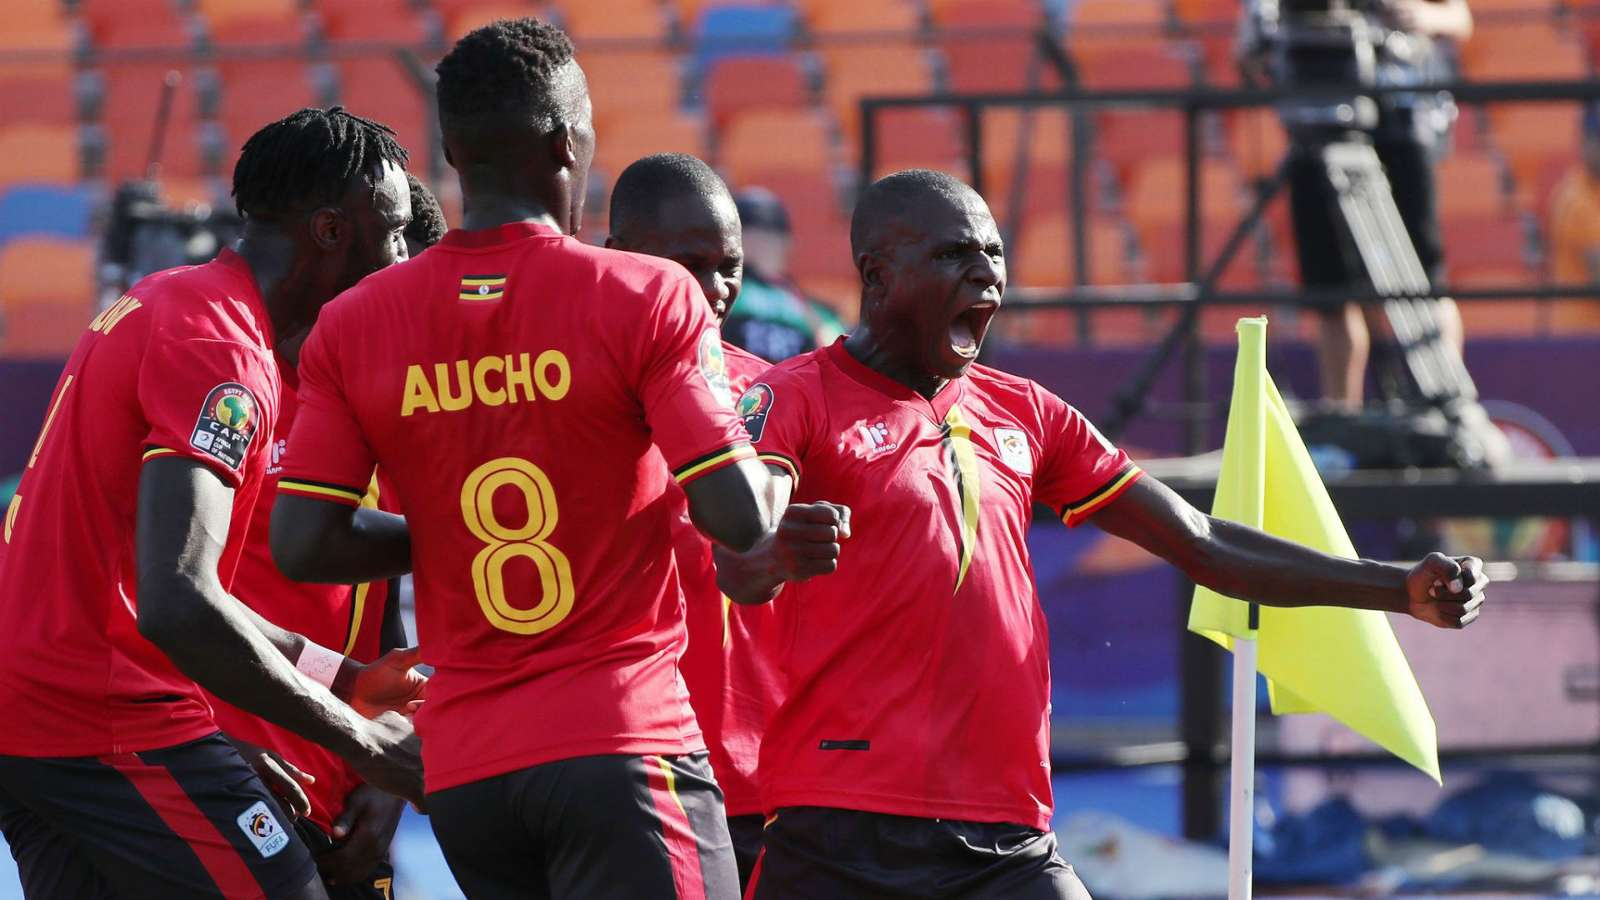 DR Congo vs Uganda [0:2]: Uganda top Group A after beating DR Congo